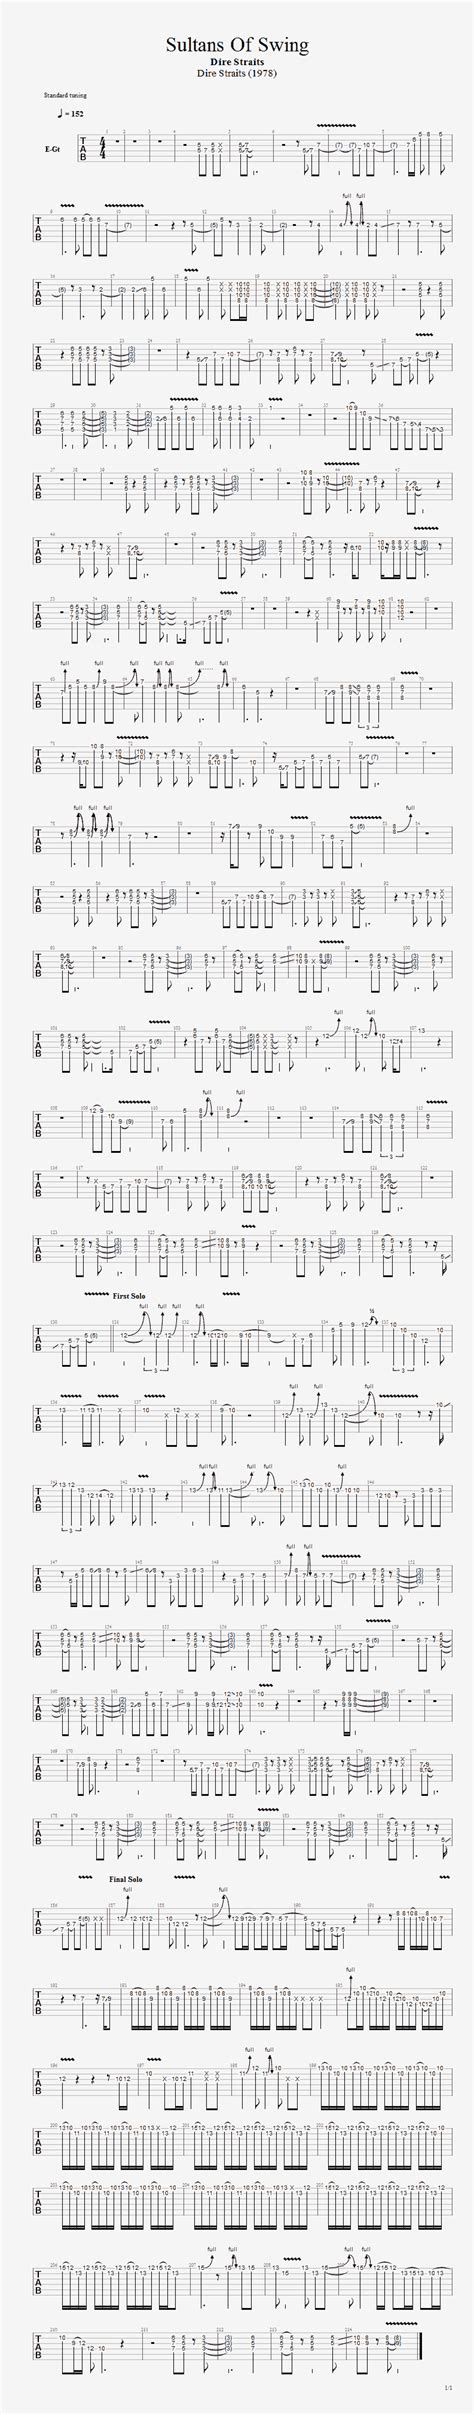 sultans of swing solo tabs sultans of swing guitar tab guitarnick com